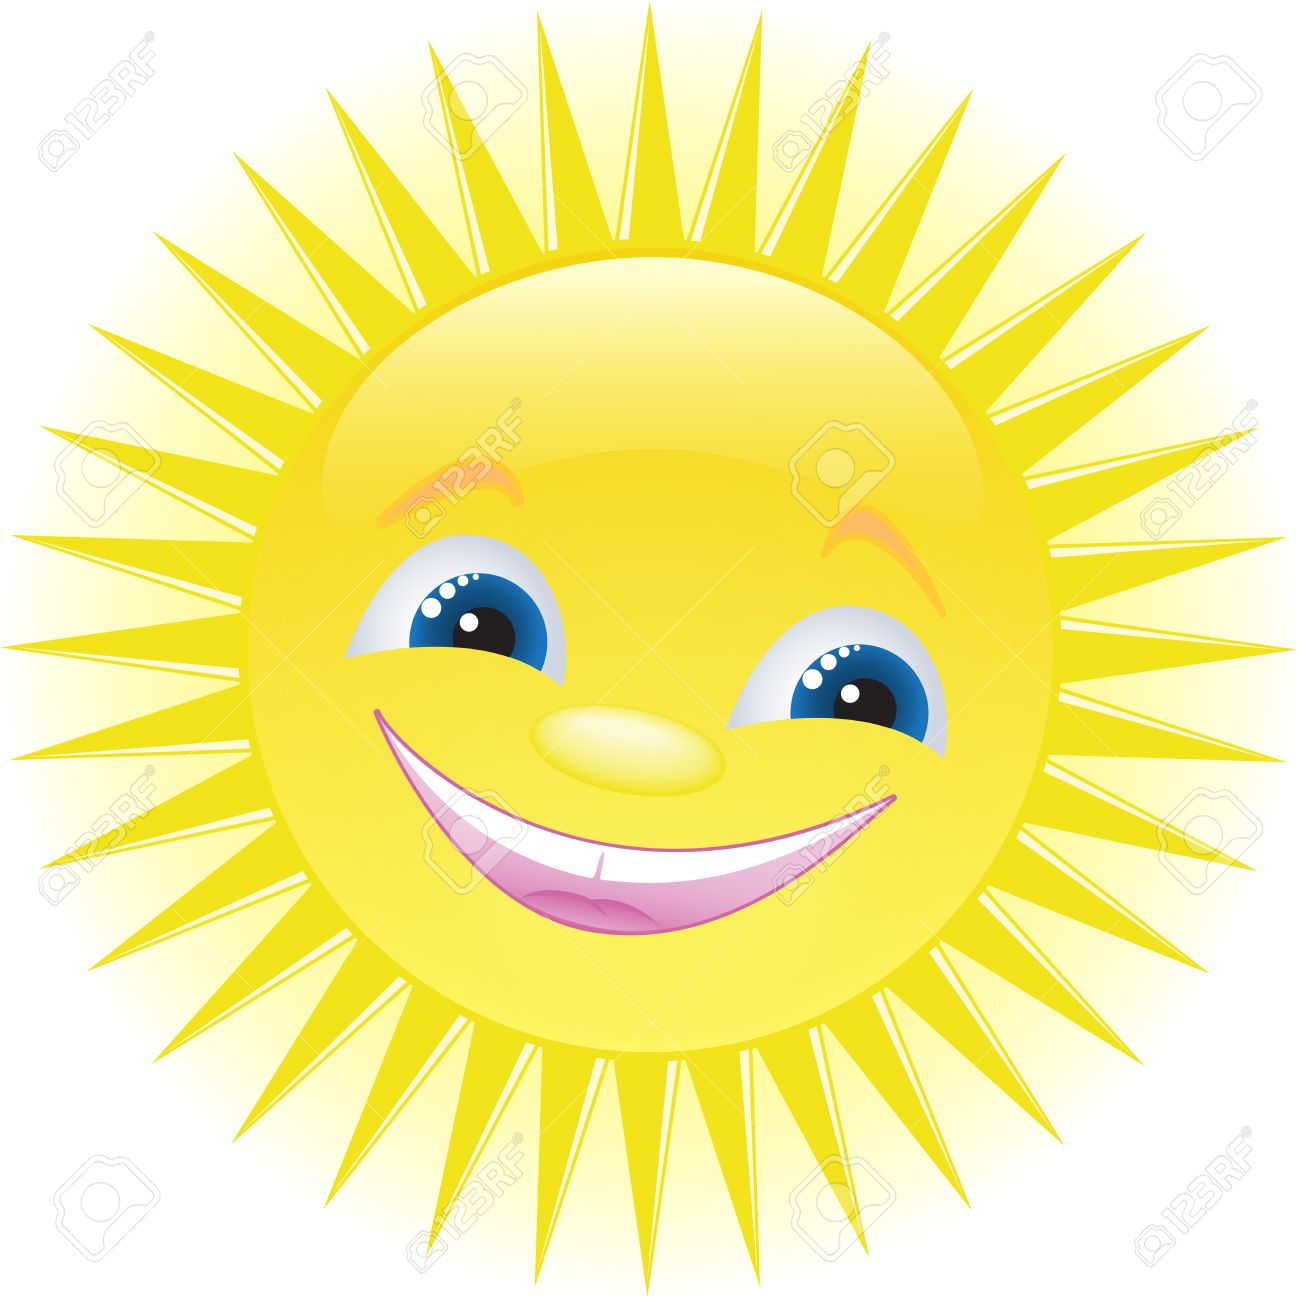 Funny Smiling Sun With Blue Eyes Royalty Free Cliparts, Vectors.